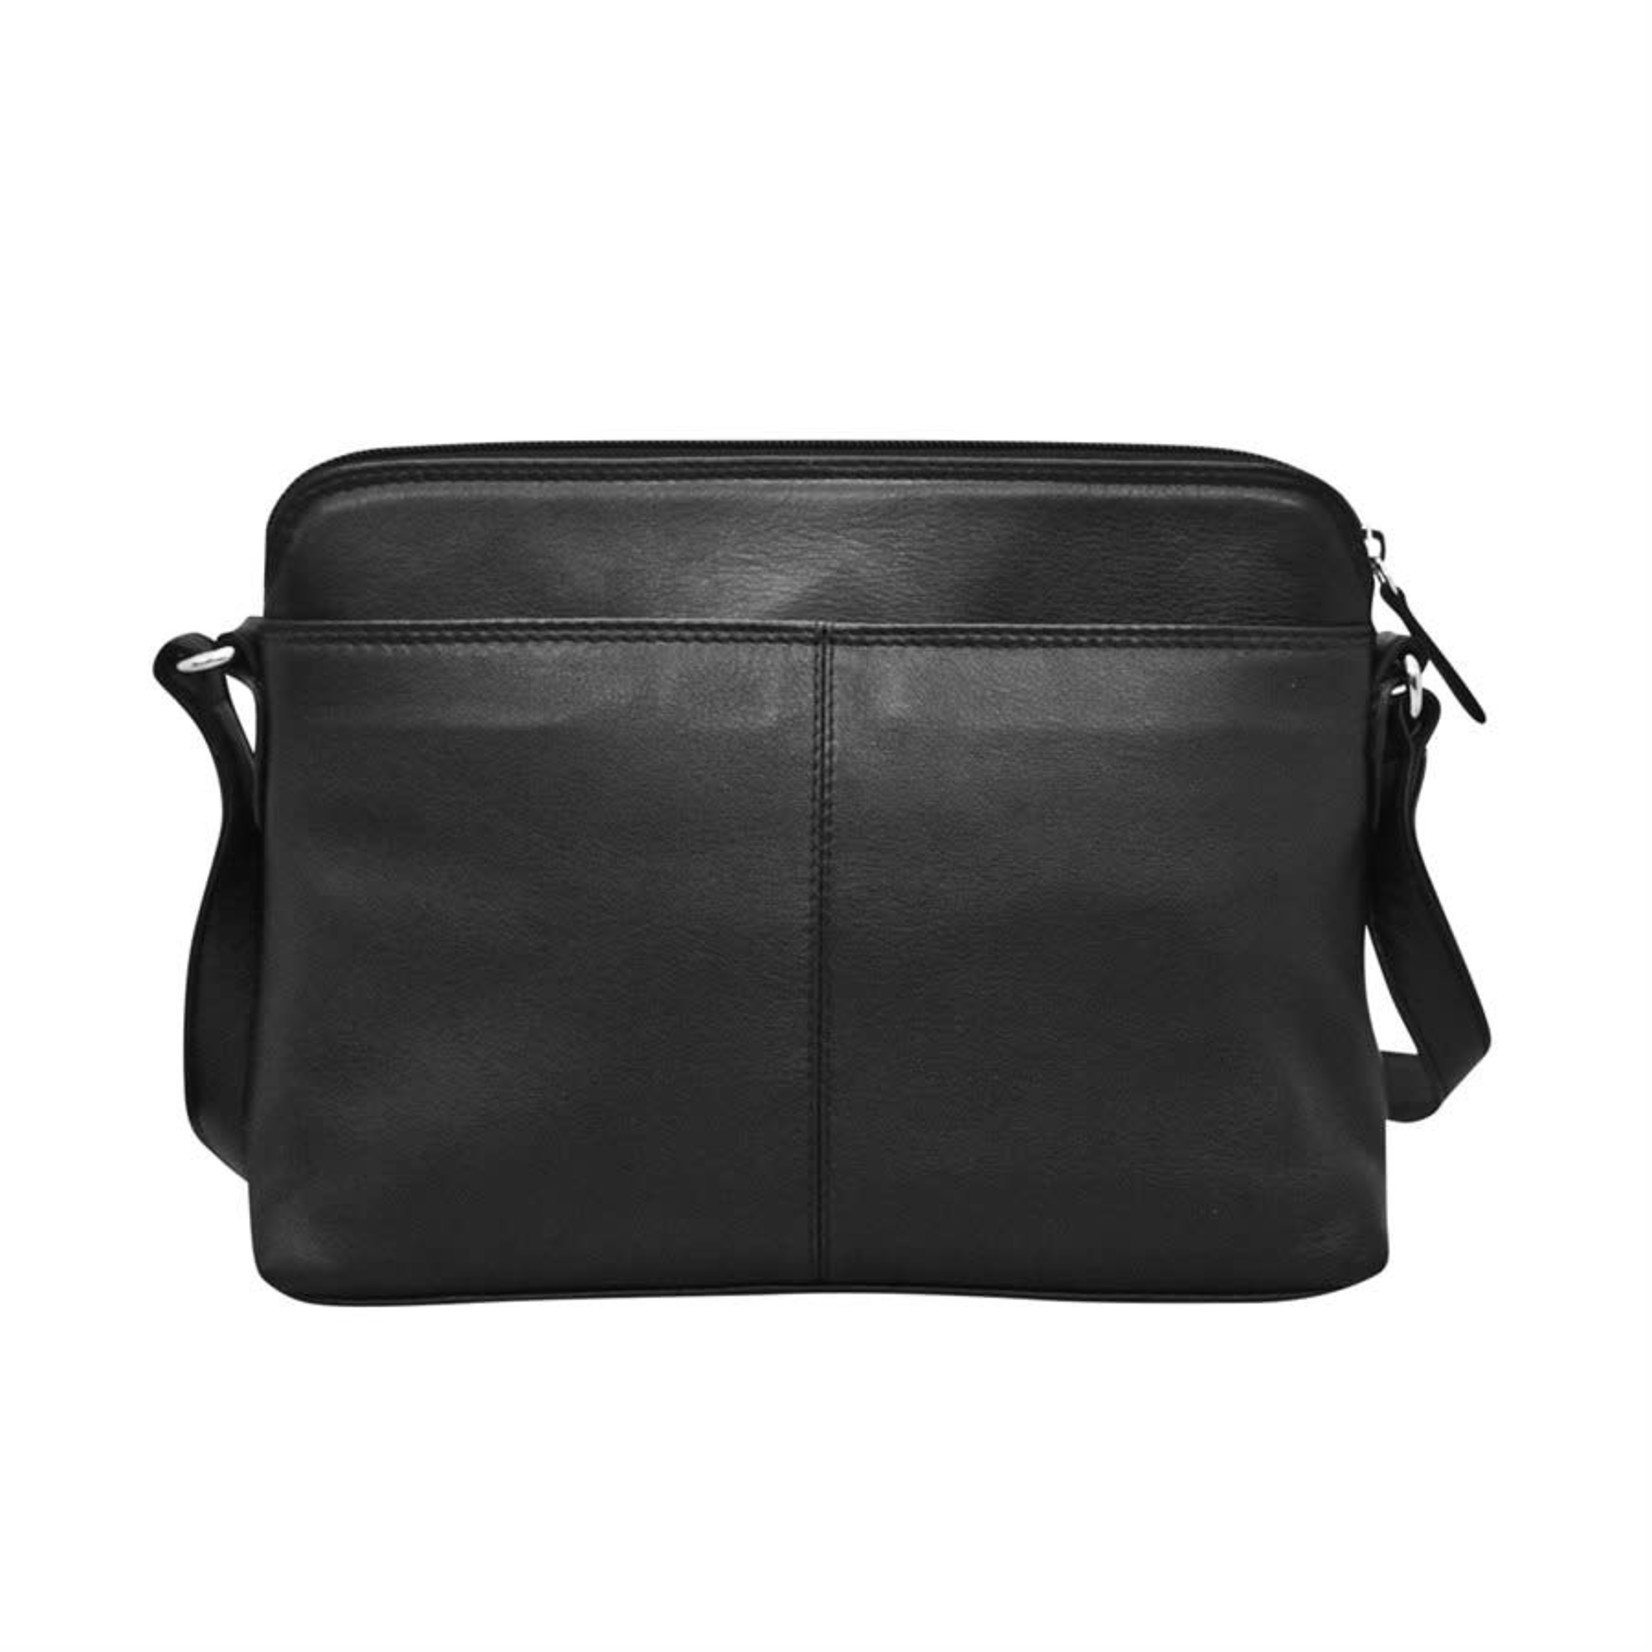 Leather Handbags and Accessories 6333 Toffee - Organizer Bag